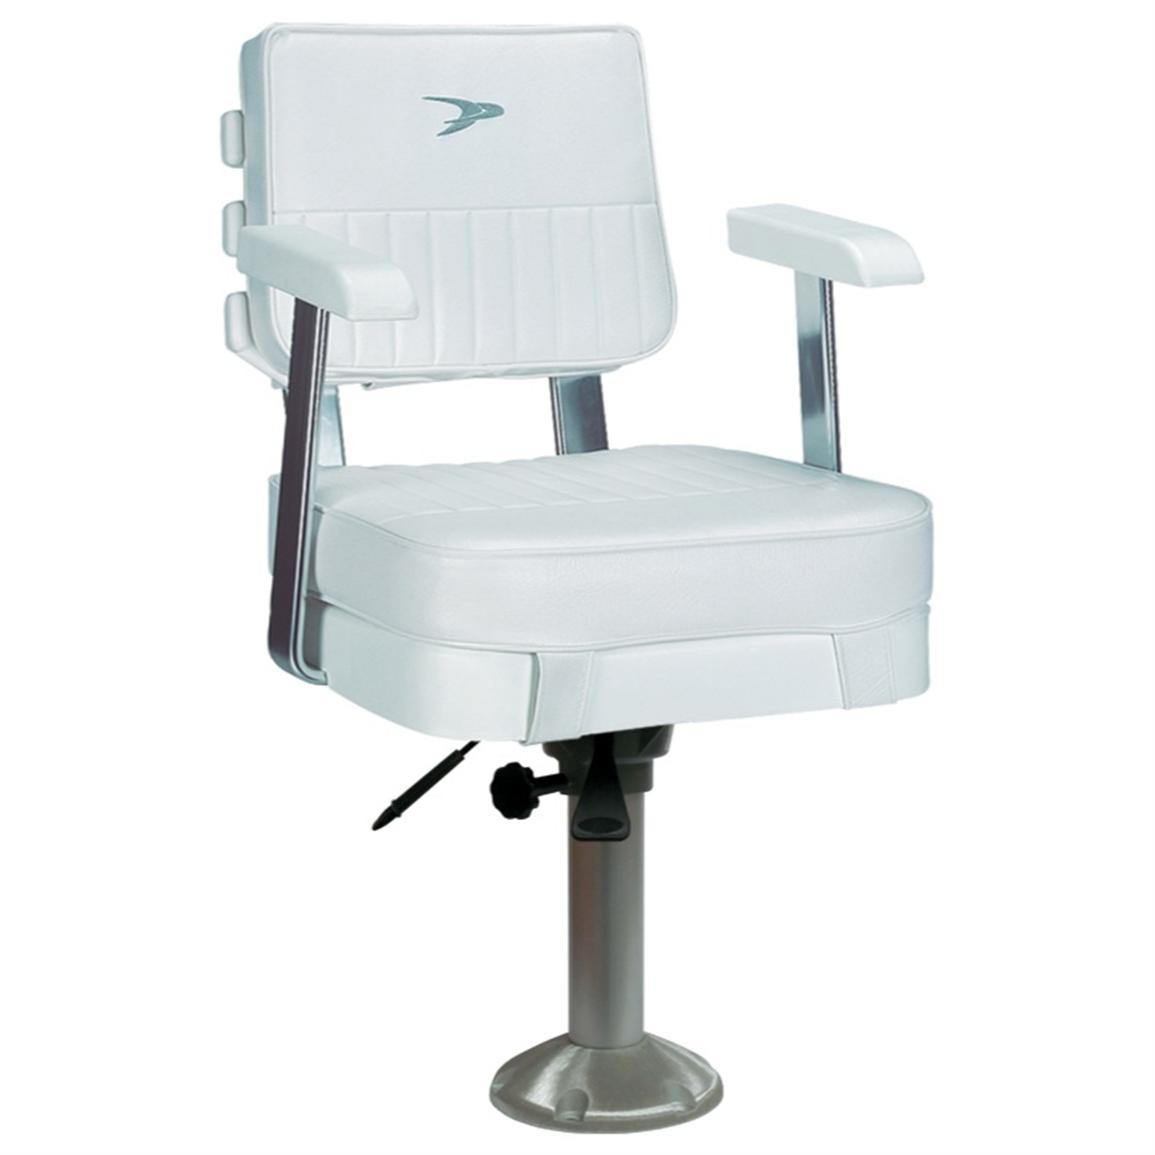 Helm Chairs Wise Offshore Ladderback Helm Chair 141401 Fishing